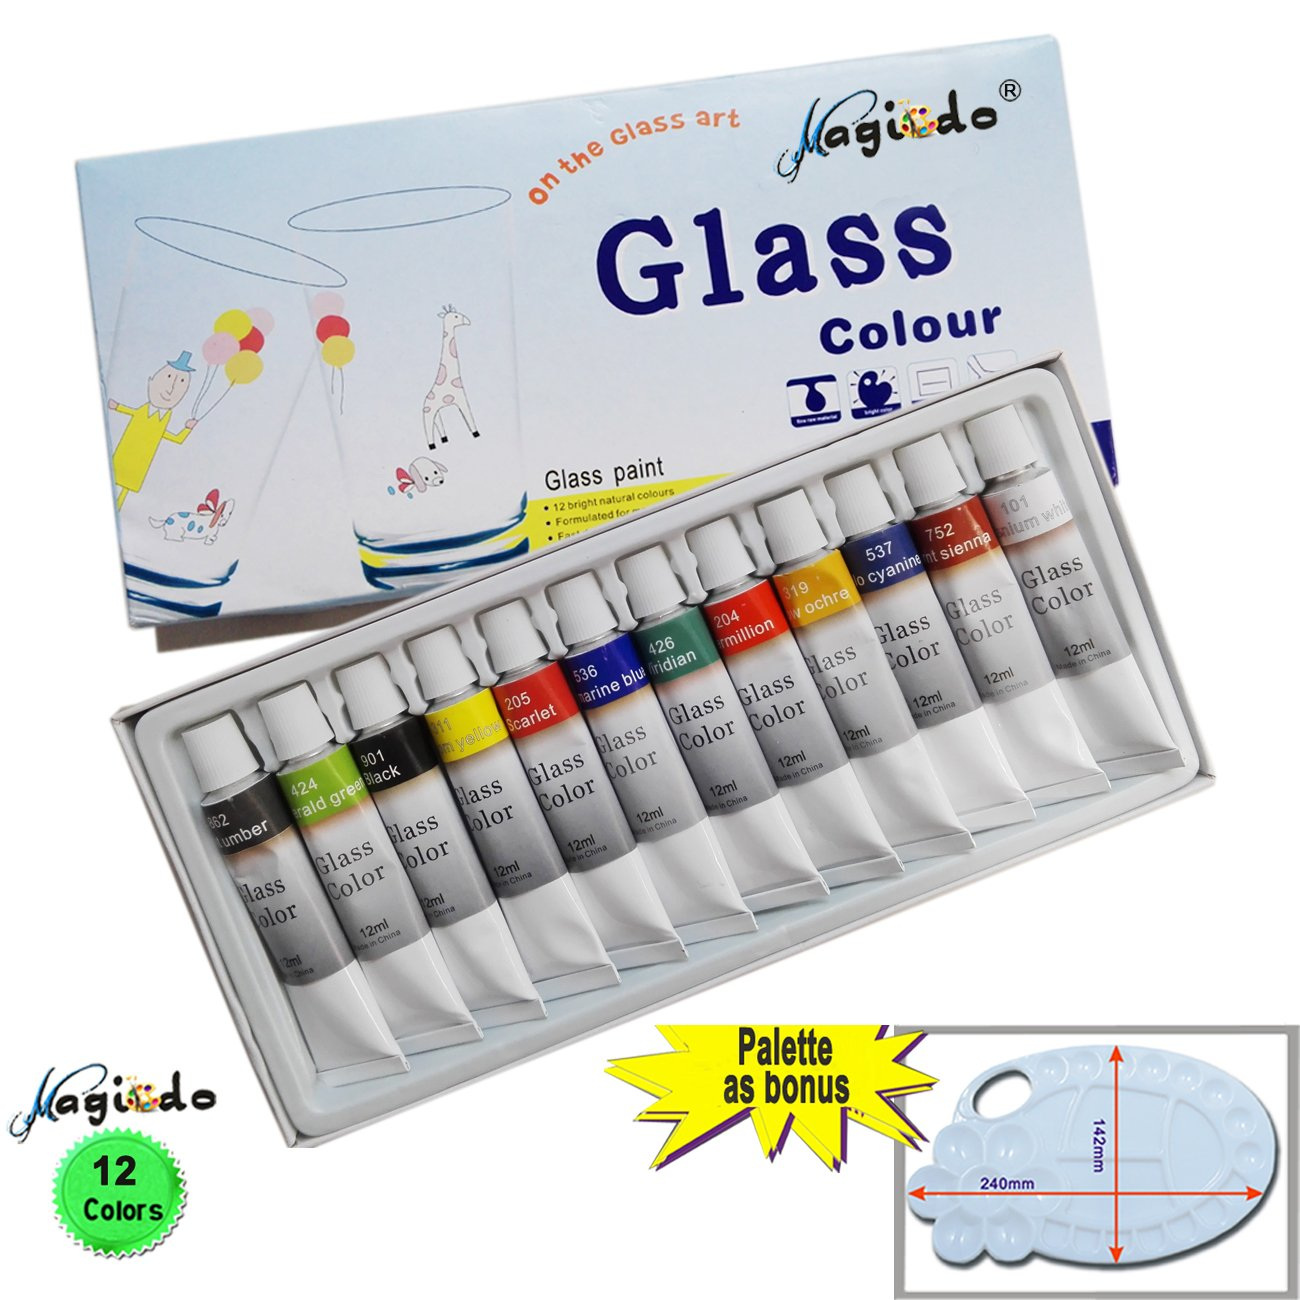 Non toxic craft paint - Magicdo 12 Cols Glass Paint With Free Palette Professional Glass Colour Set Quality